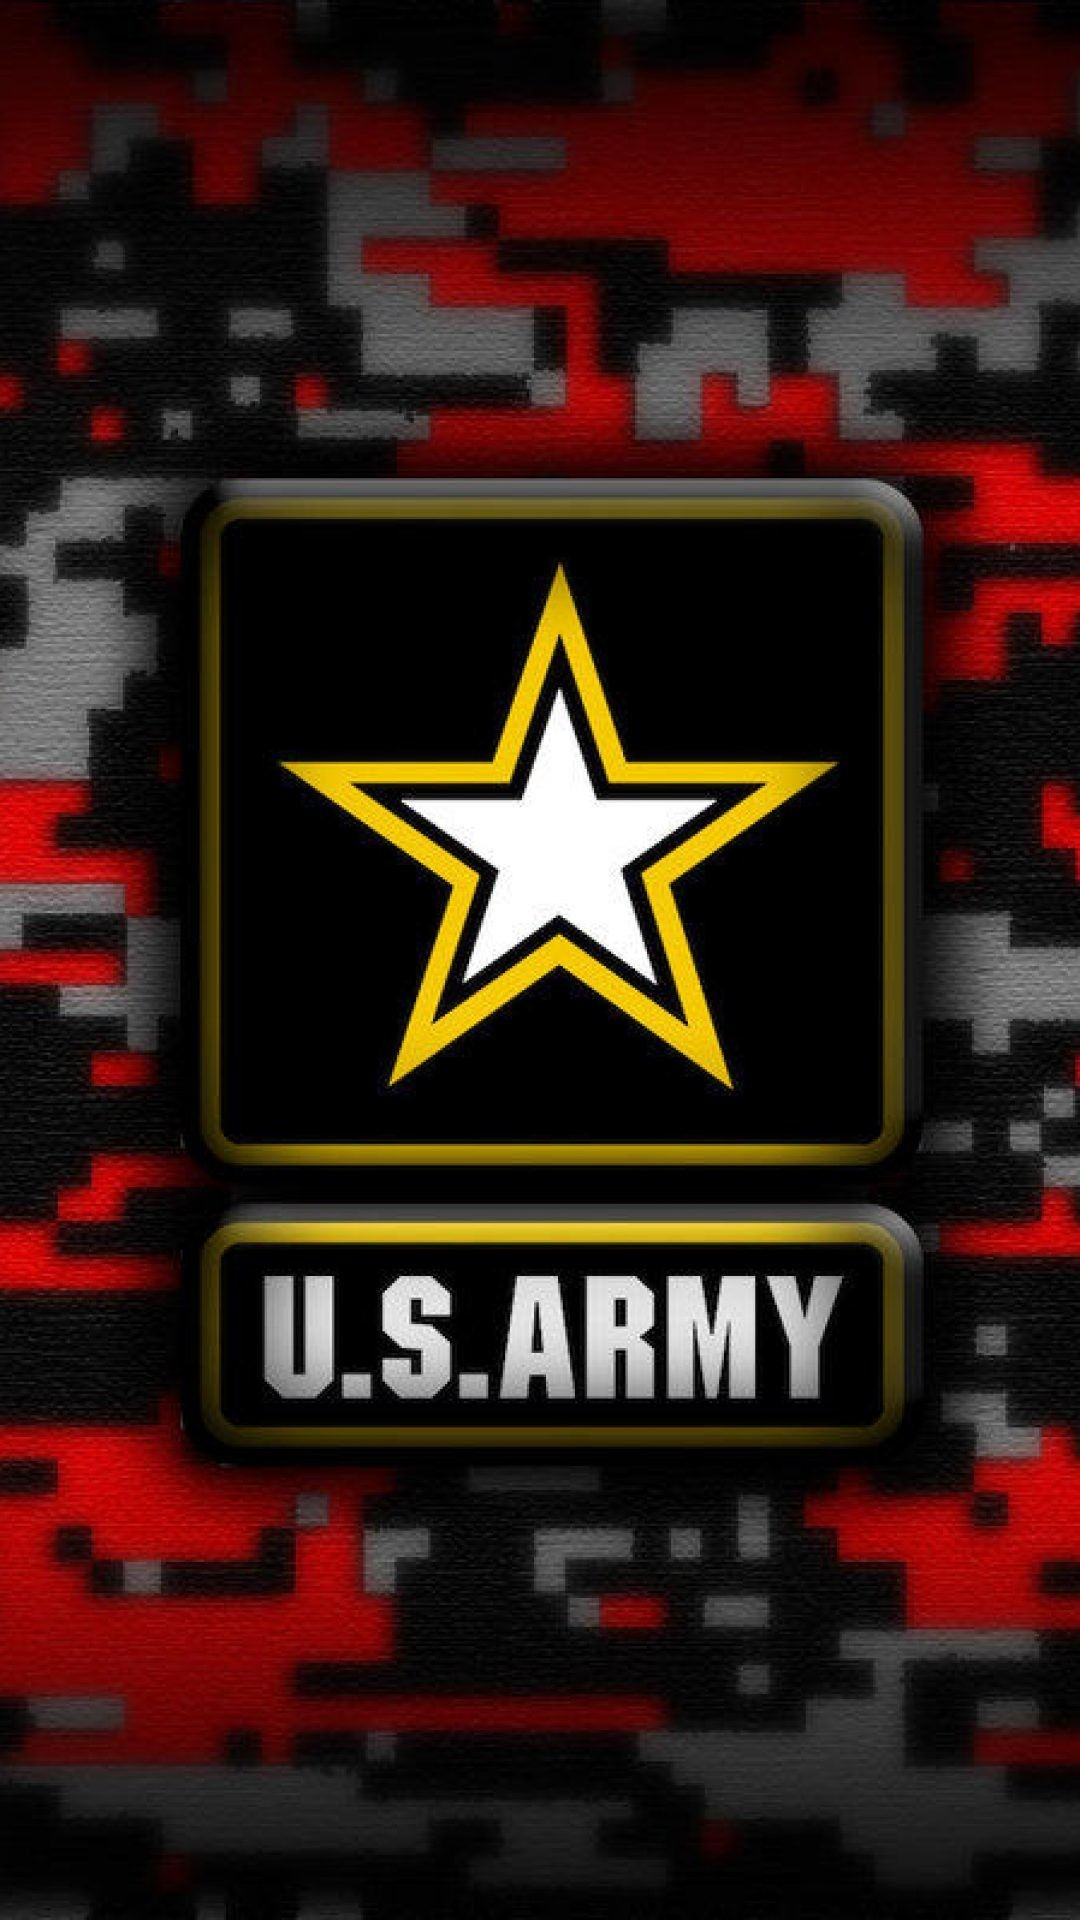 U S Army Iphone Wallpapers Top Free U S Army Iphone